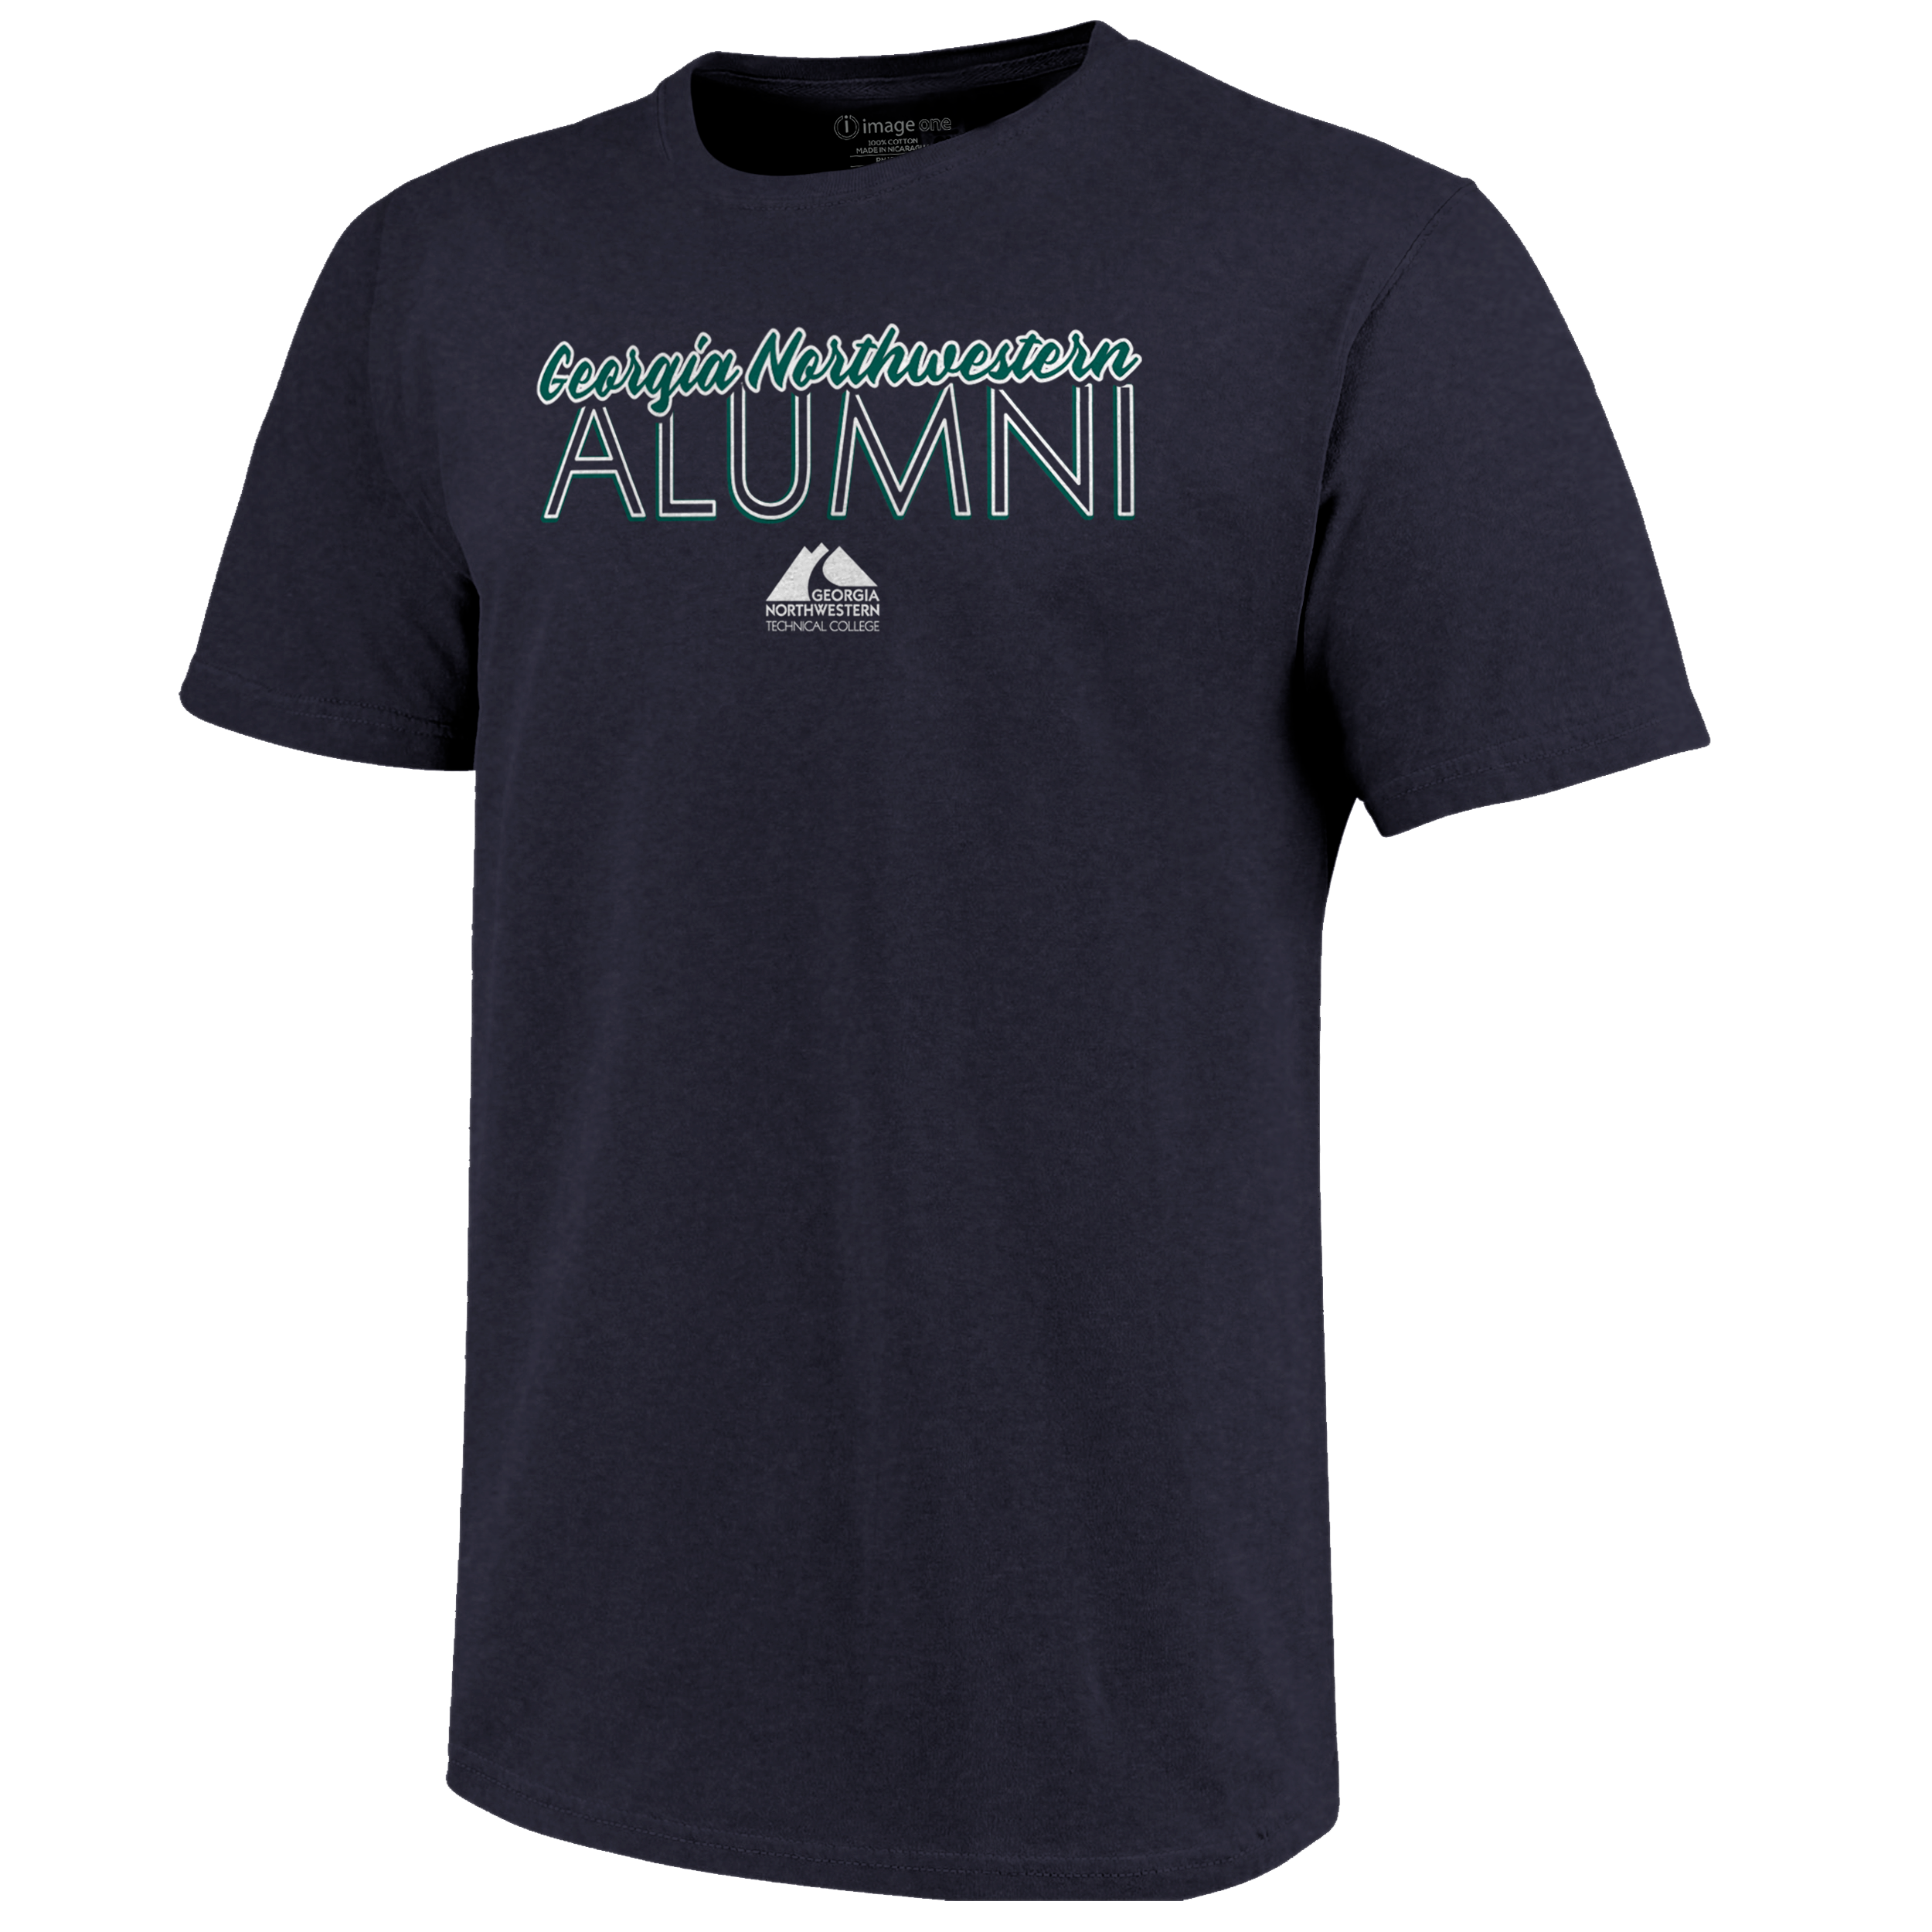 Georgia Northwestern Outline Script Alumni Tshirt